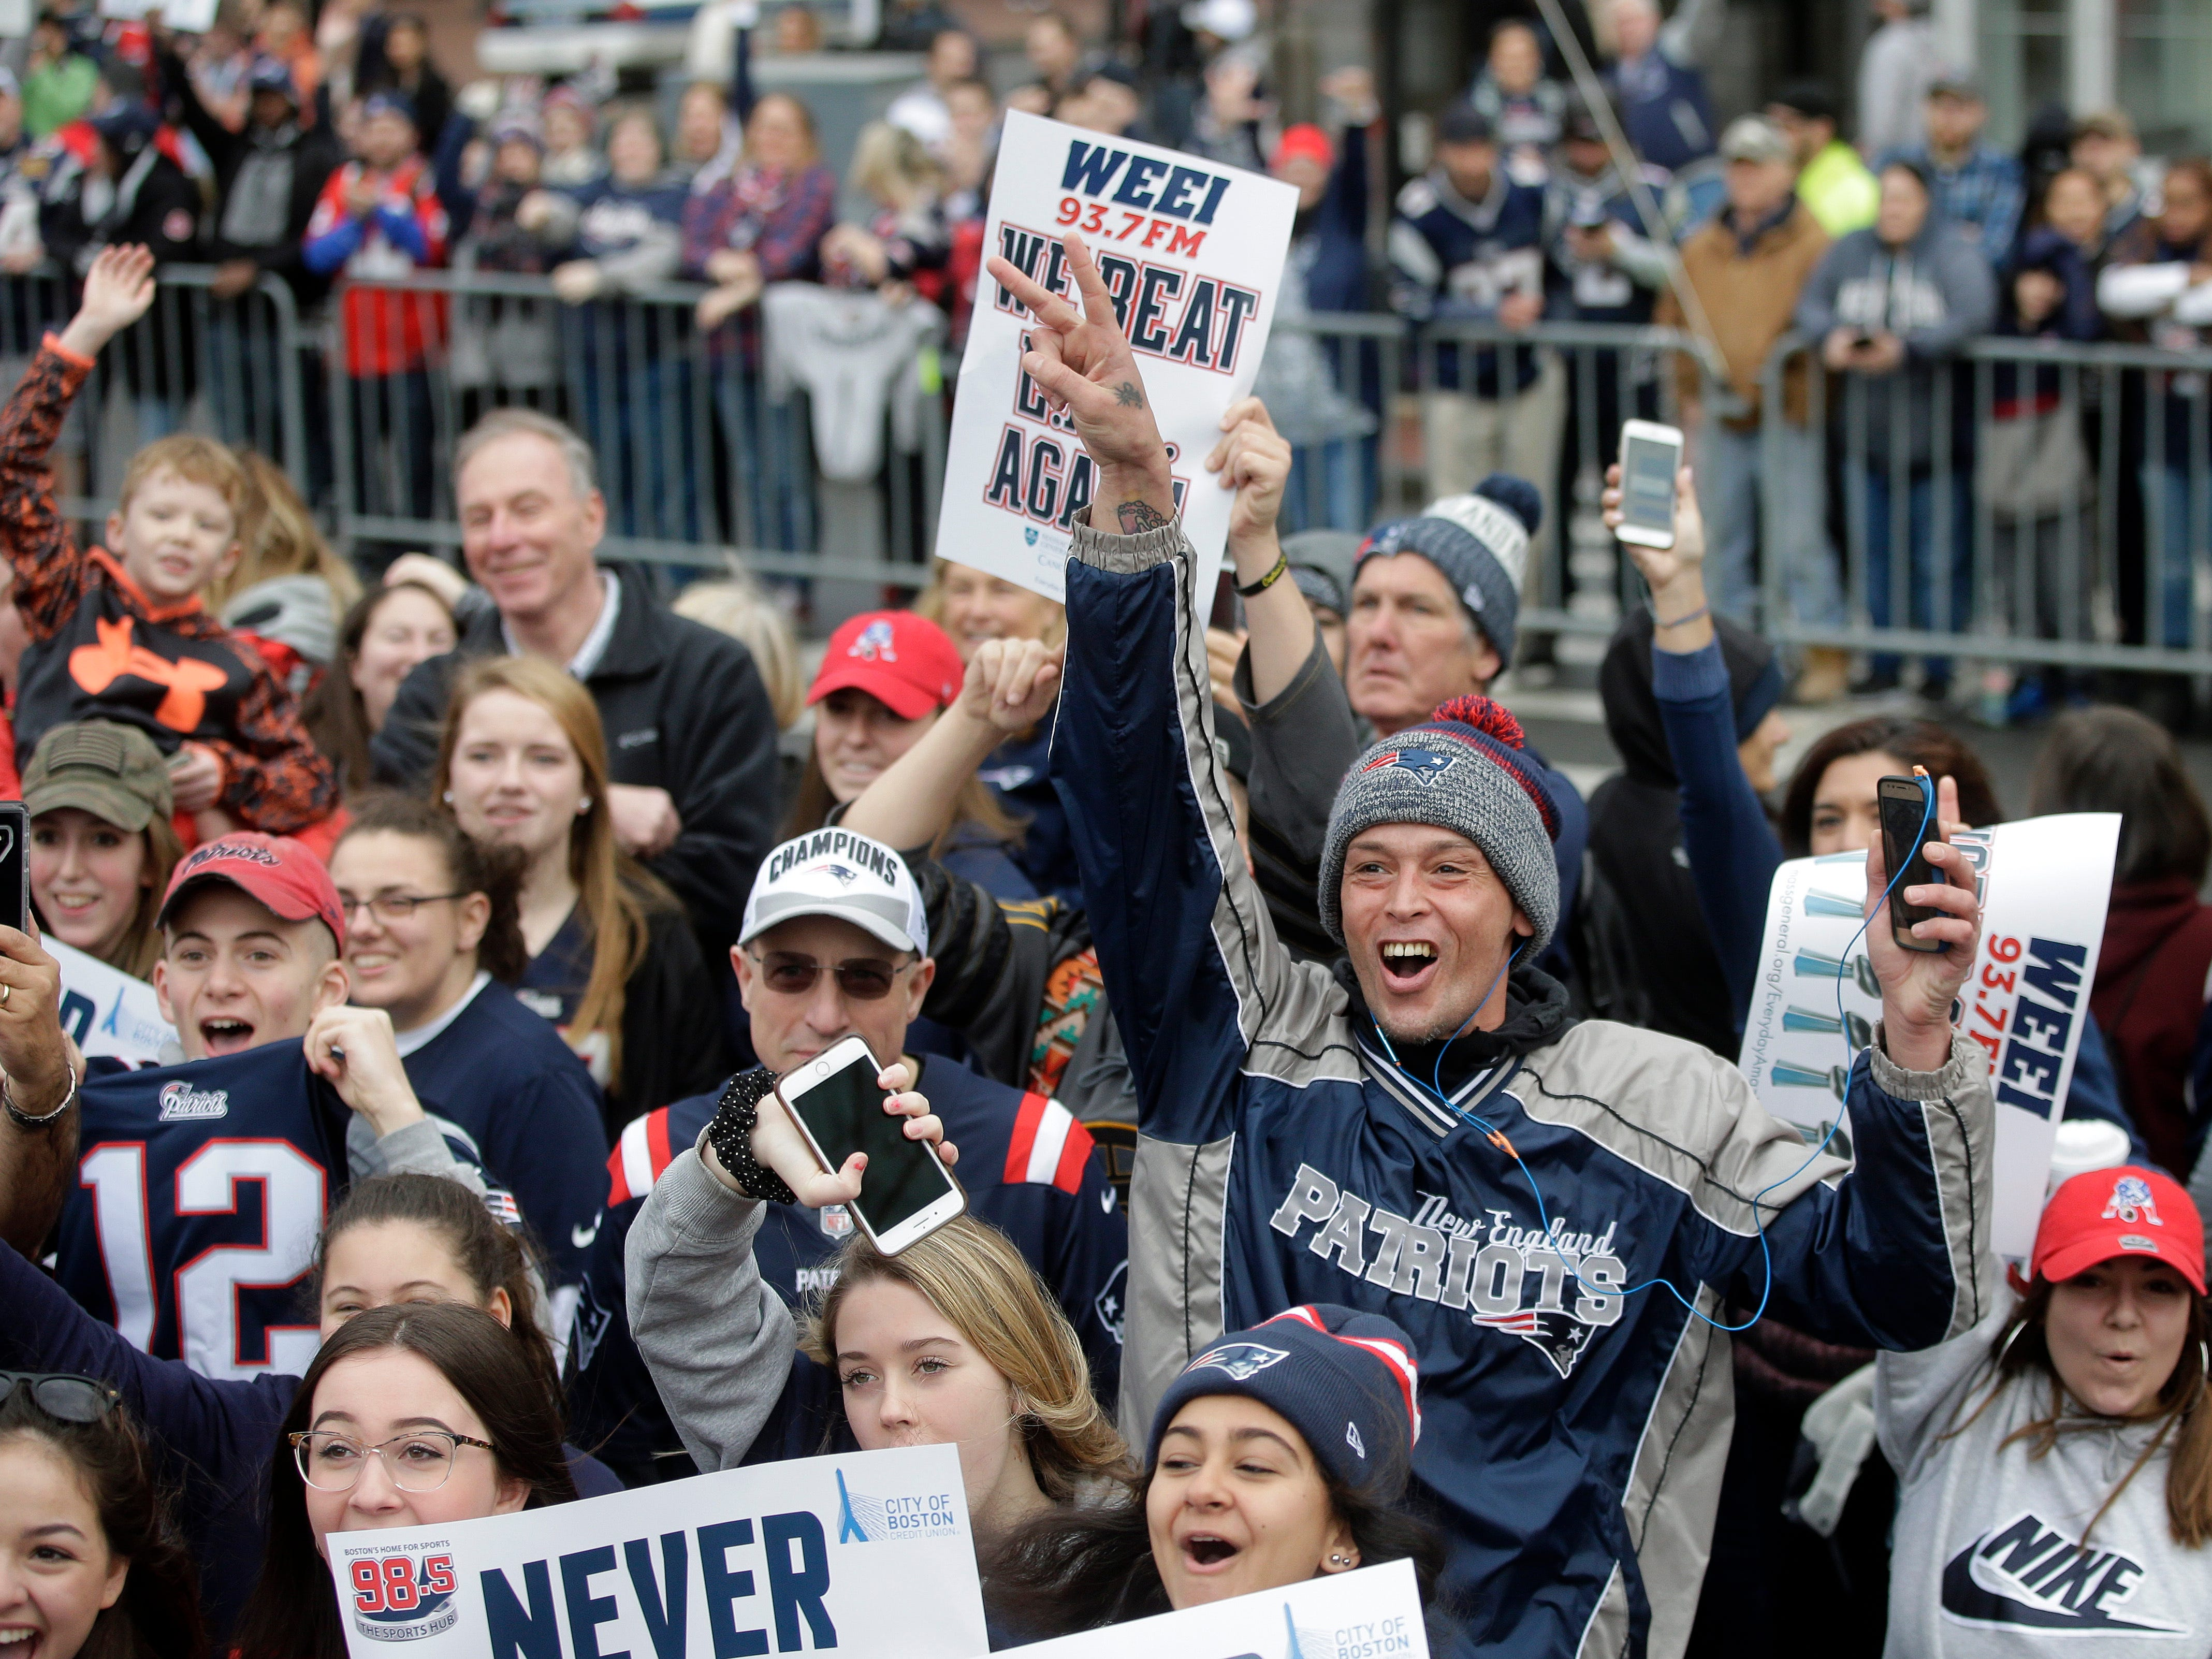 Fans wait for the New England Patriots parade to through downtown Boston to celebrate their win over the Los Angeles Rams in Sunday's NFL Super Bowl 53 football game in Atlanta. (AP Photo/Steven Senne)